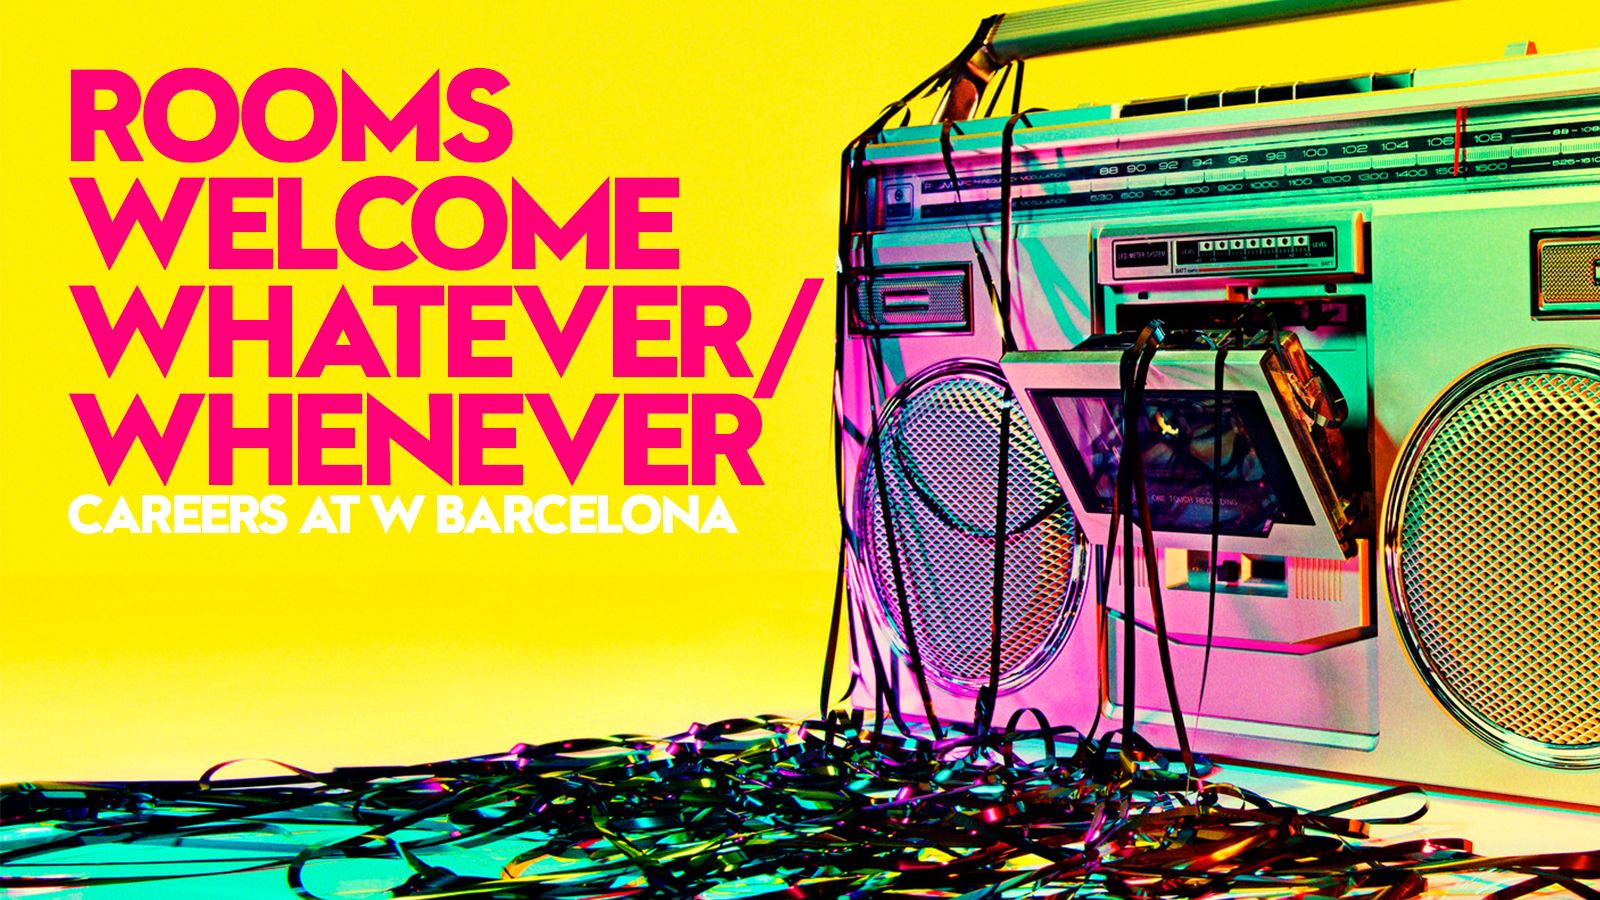 Rooms | Welcome | Whatever/Whenever - W Barcelona